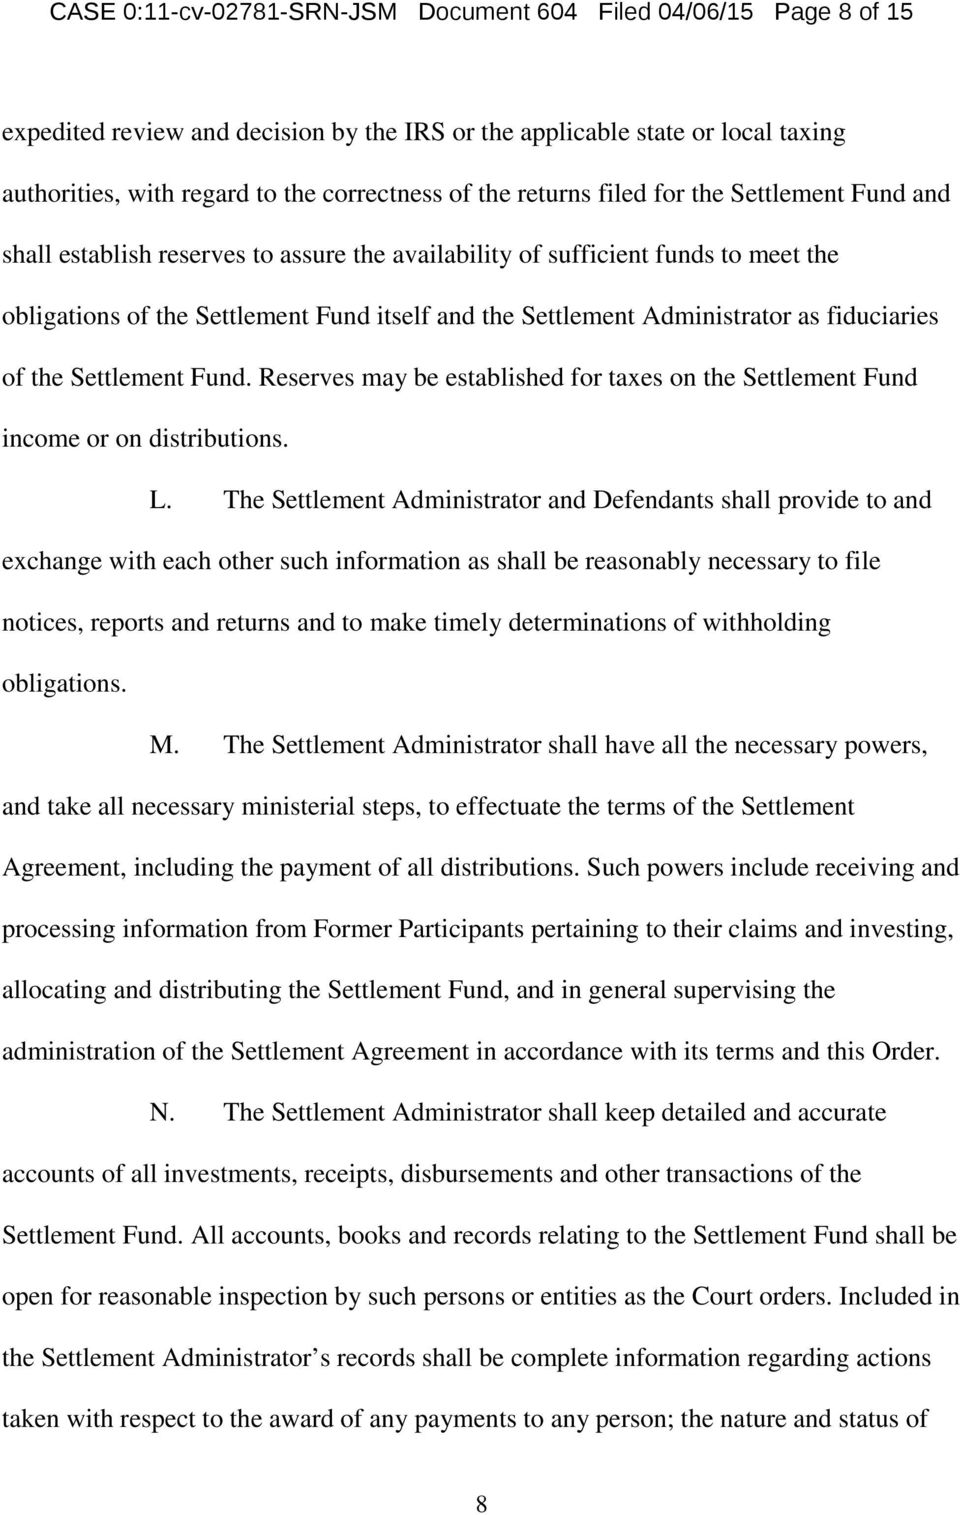 Administrator as fiduciaries of the Settlement Fund. Reserves may be established for taxes on the Settlement Fund income or on distributions. L.